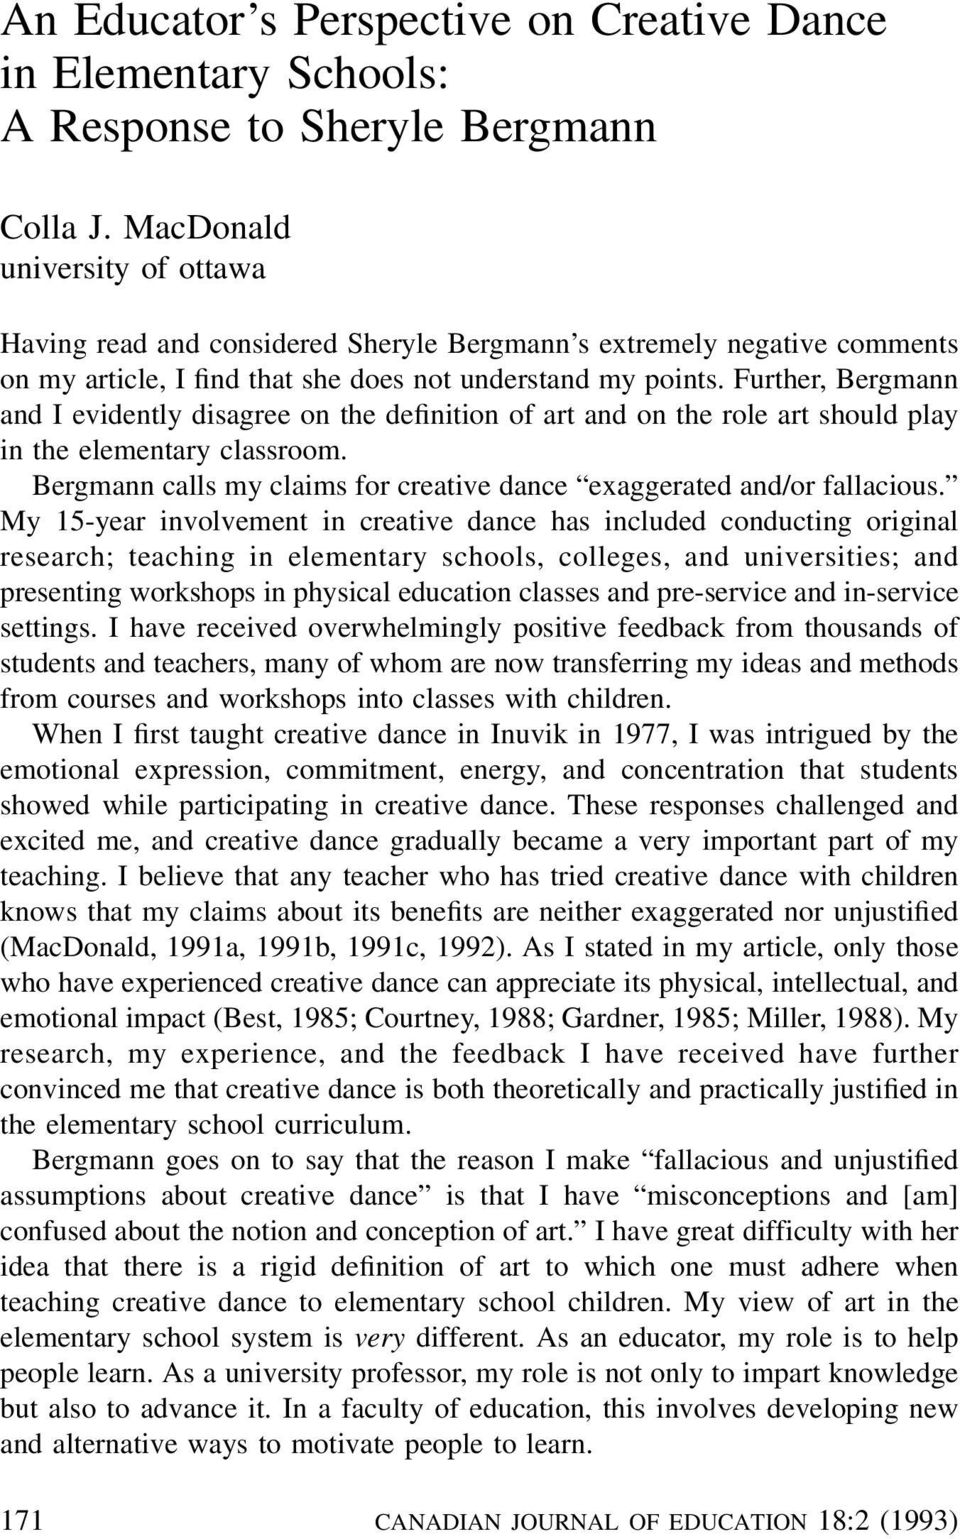 Further, Bergmann and I evidently disagree on the definition of art and on the role art should play in the elementary classroom.